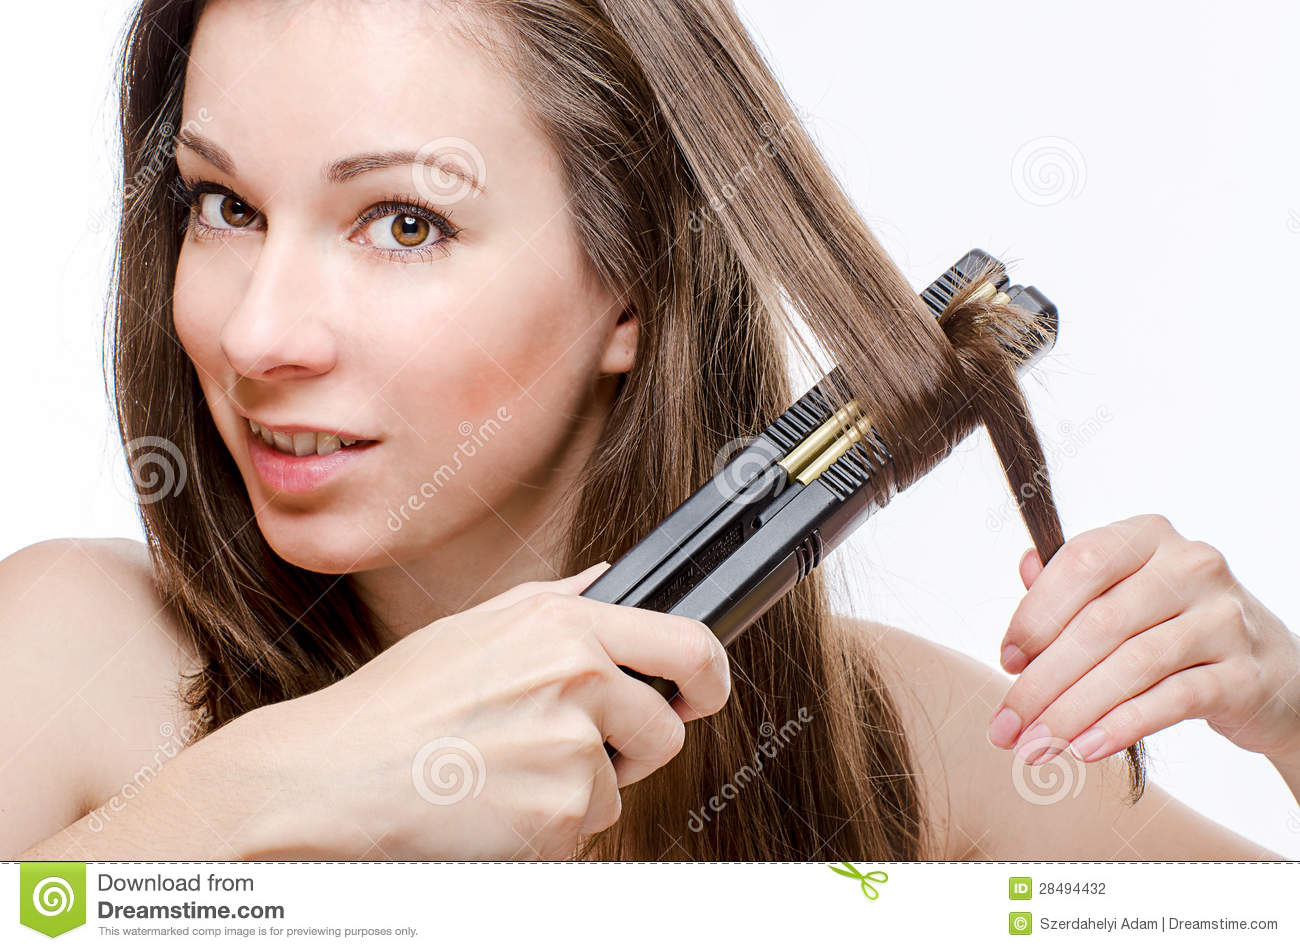 Young Woman Curling Hair With Hair Straightener Stock Photo - Image: 28494432